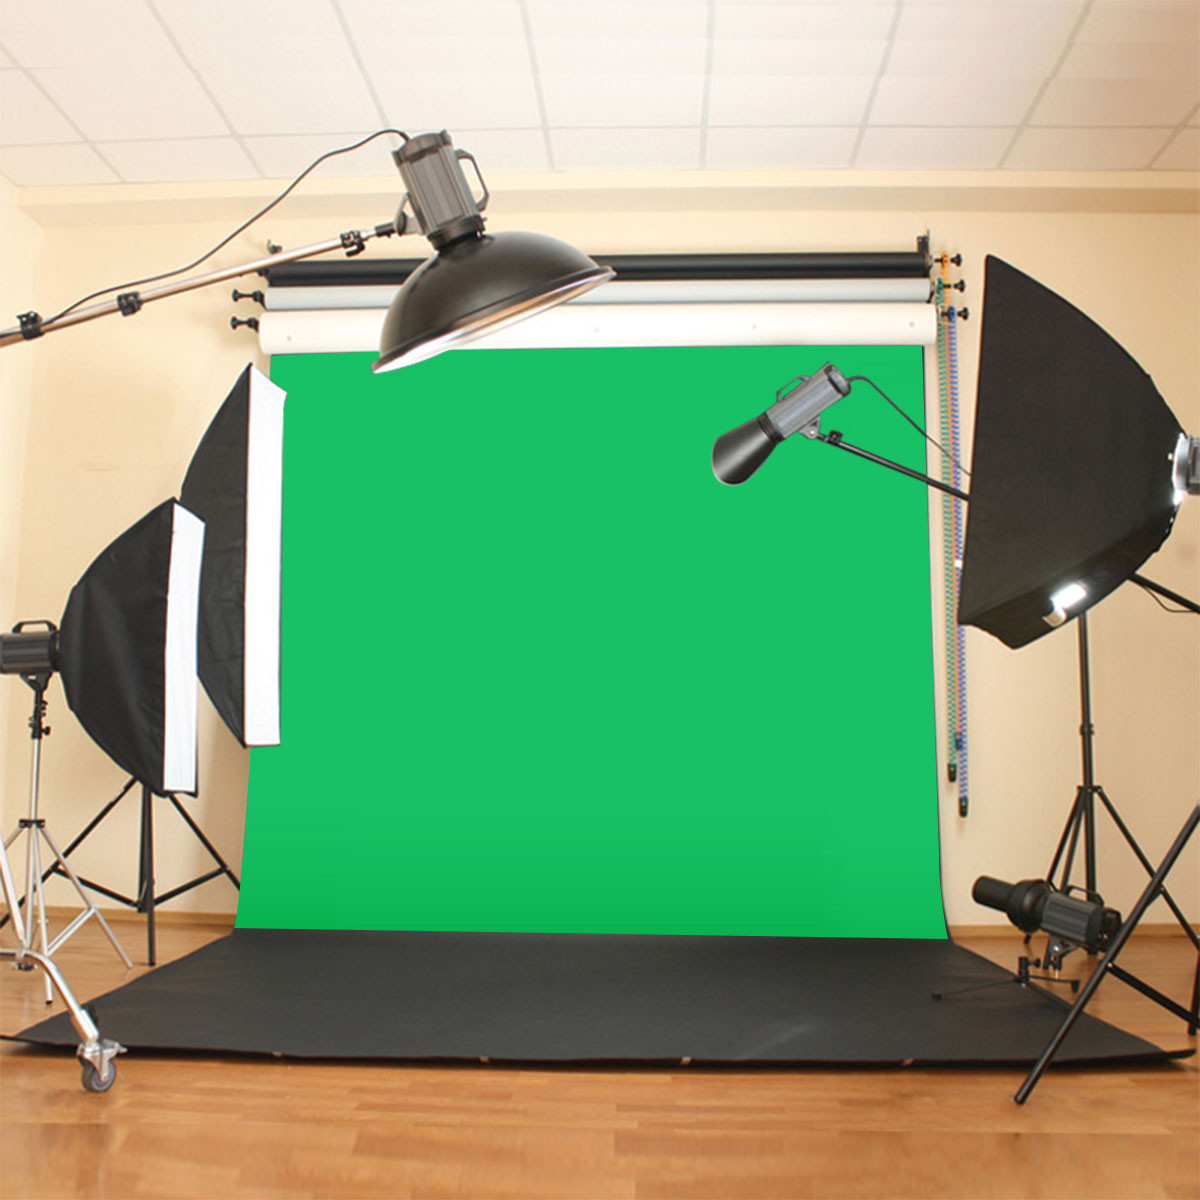 цена на 10X10ft/300x300CM Chromakey Green Screen Muslin Green Cloth Screen Backdrop Photo Photography Studio Background